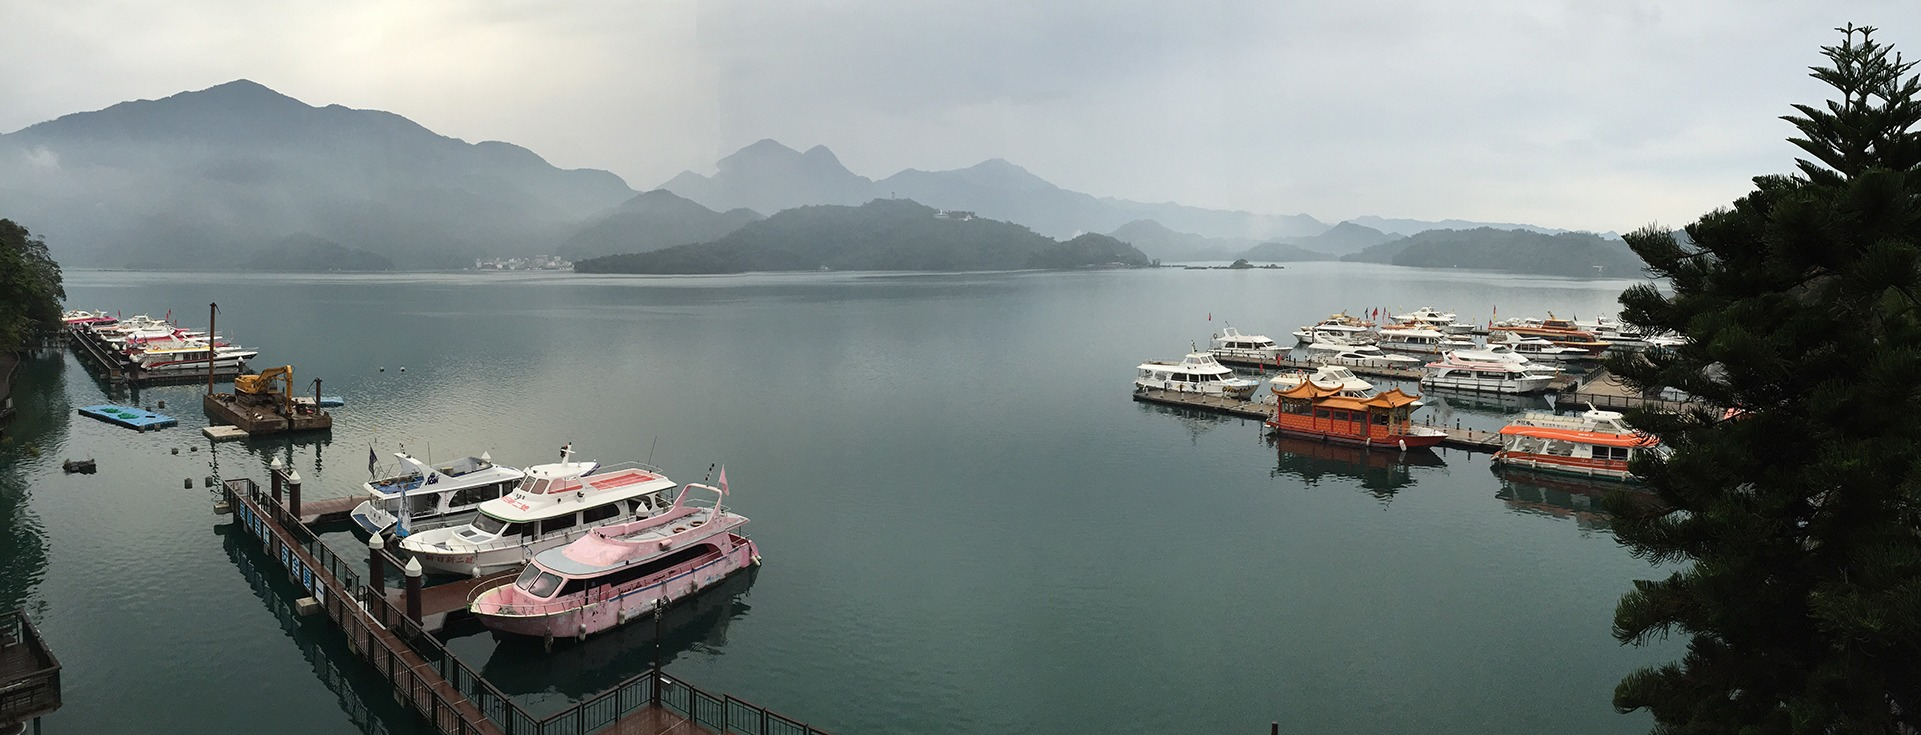 mountain and lake background nature view in taiwan